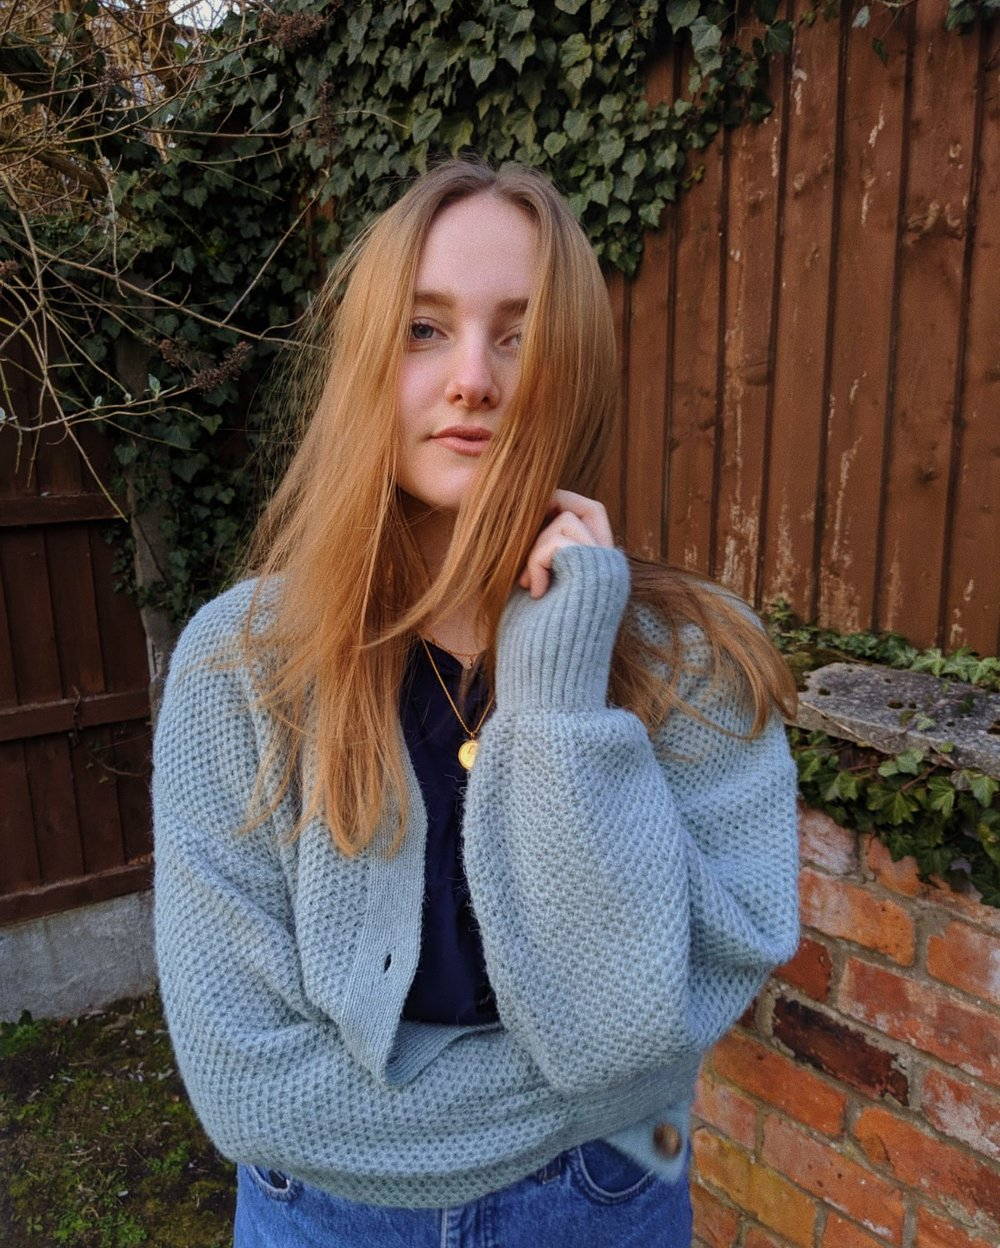 Living With Anxiety | An Update on My Mental Health & Ways I'm Coping6.JPG